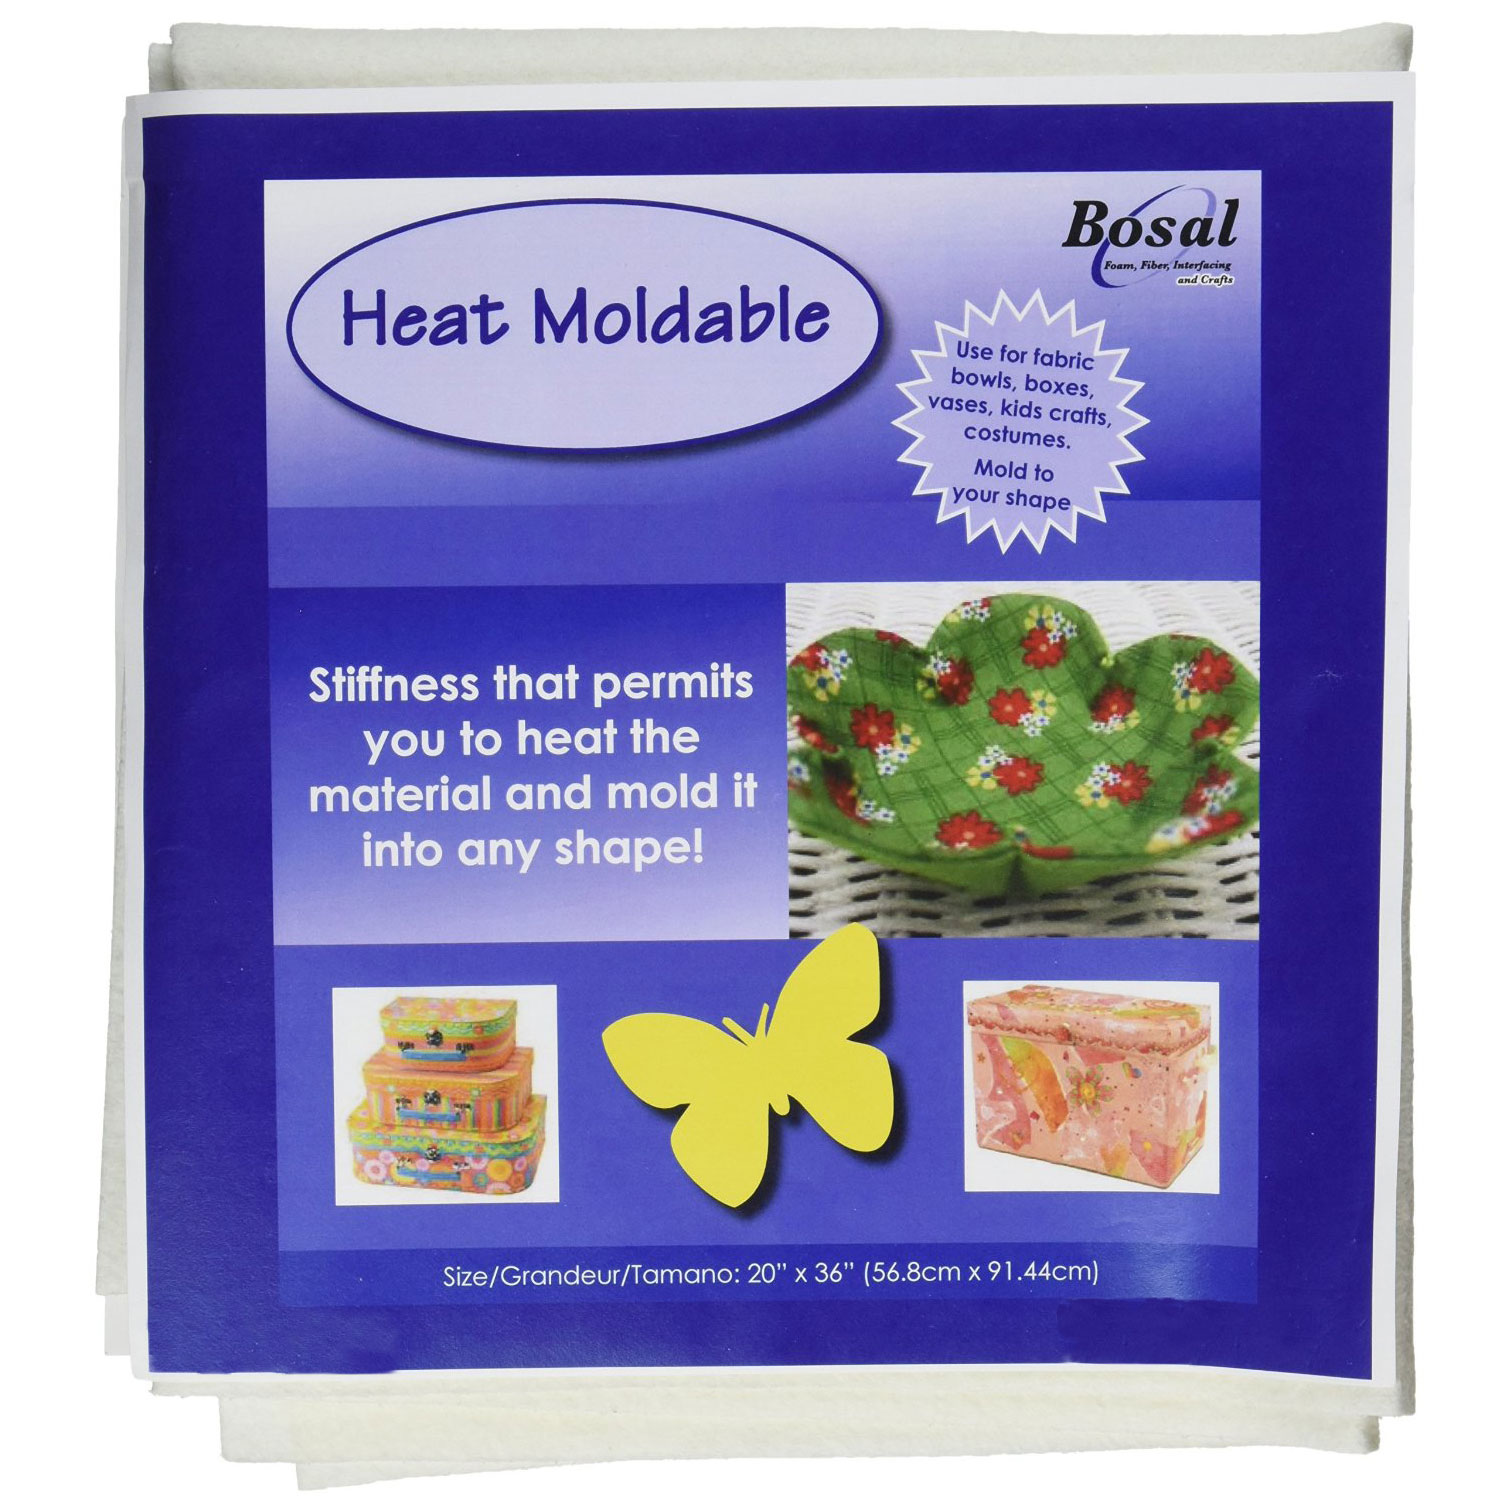 Bosal Heat Moldable 20 x 36